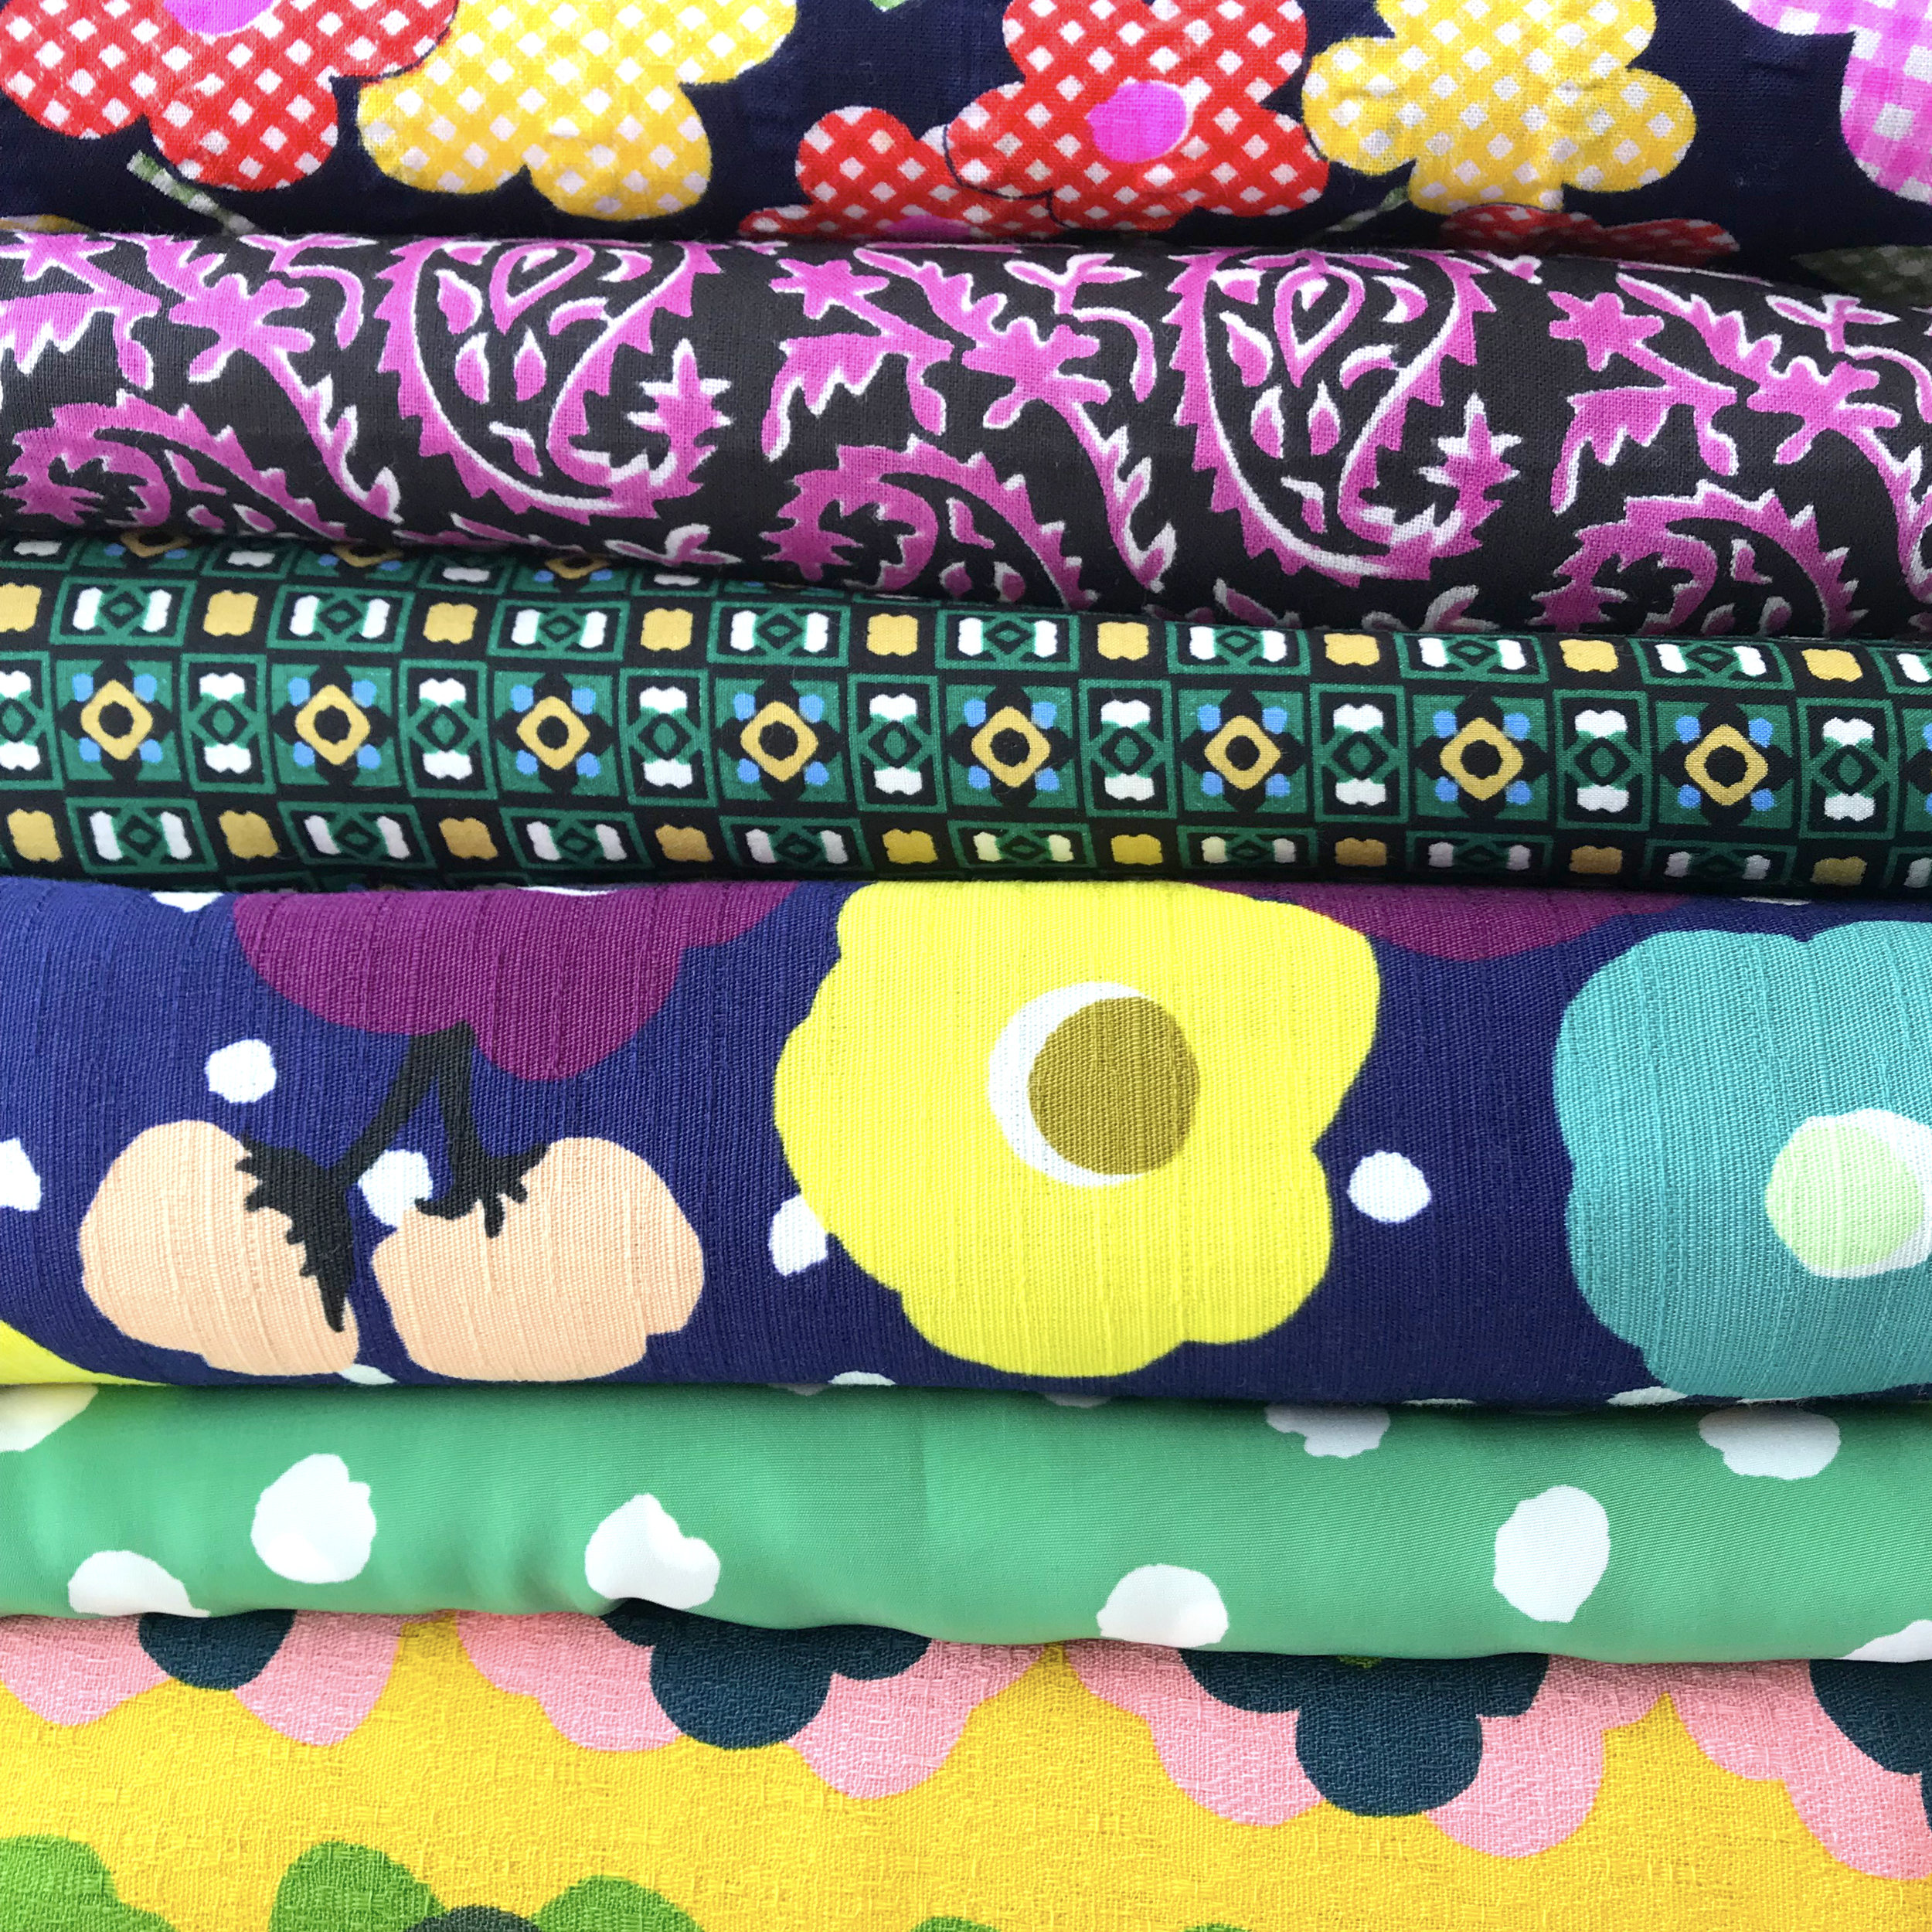 Some of my finds. Japanese fabrics drive me wild! I love the colors, textures, and prints.